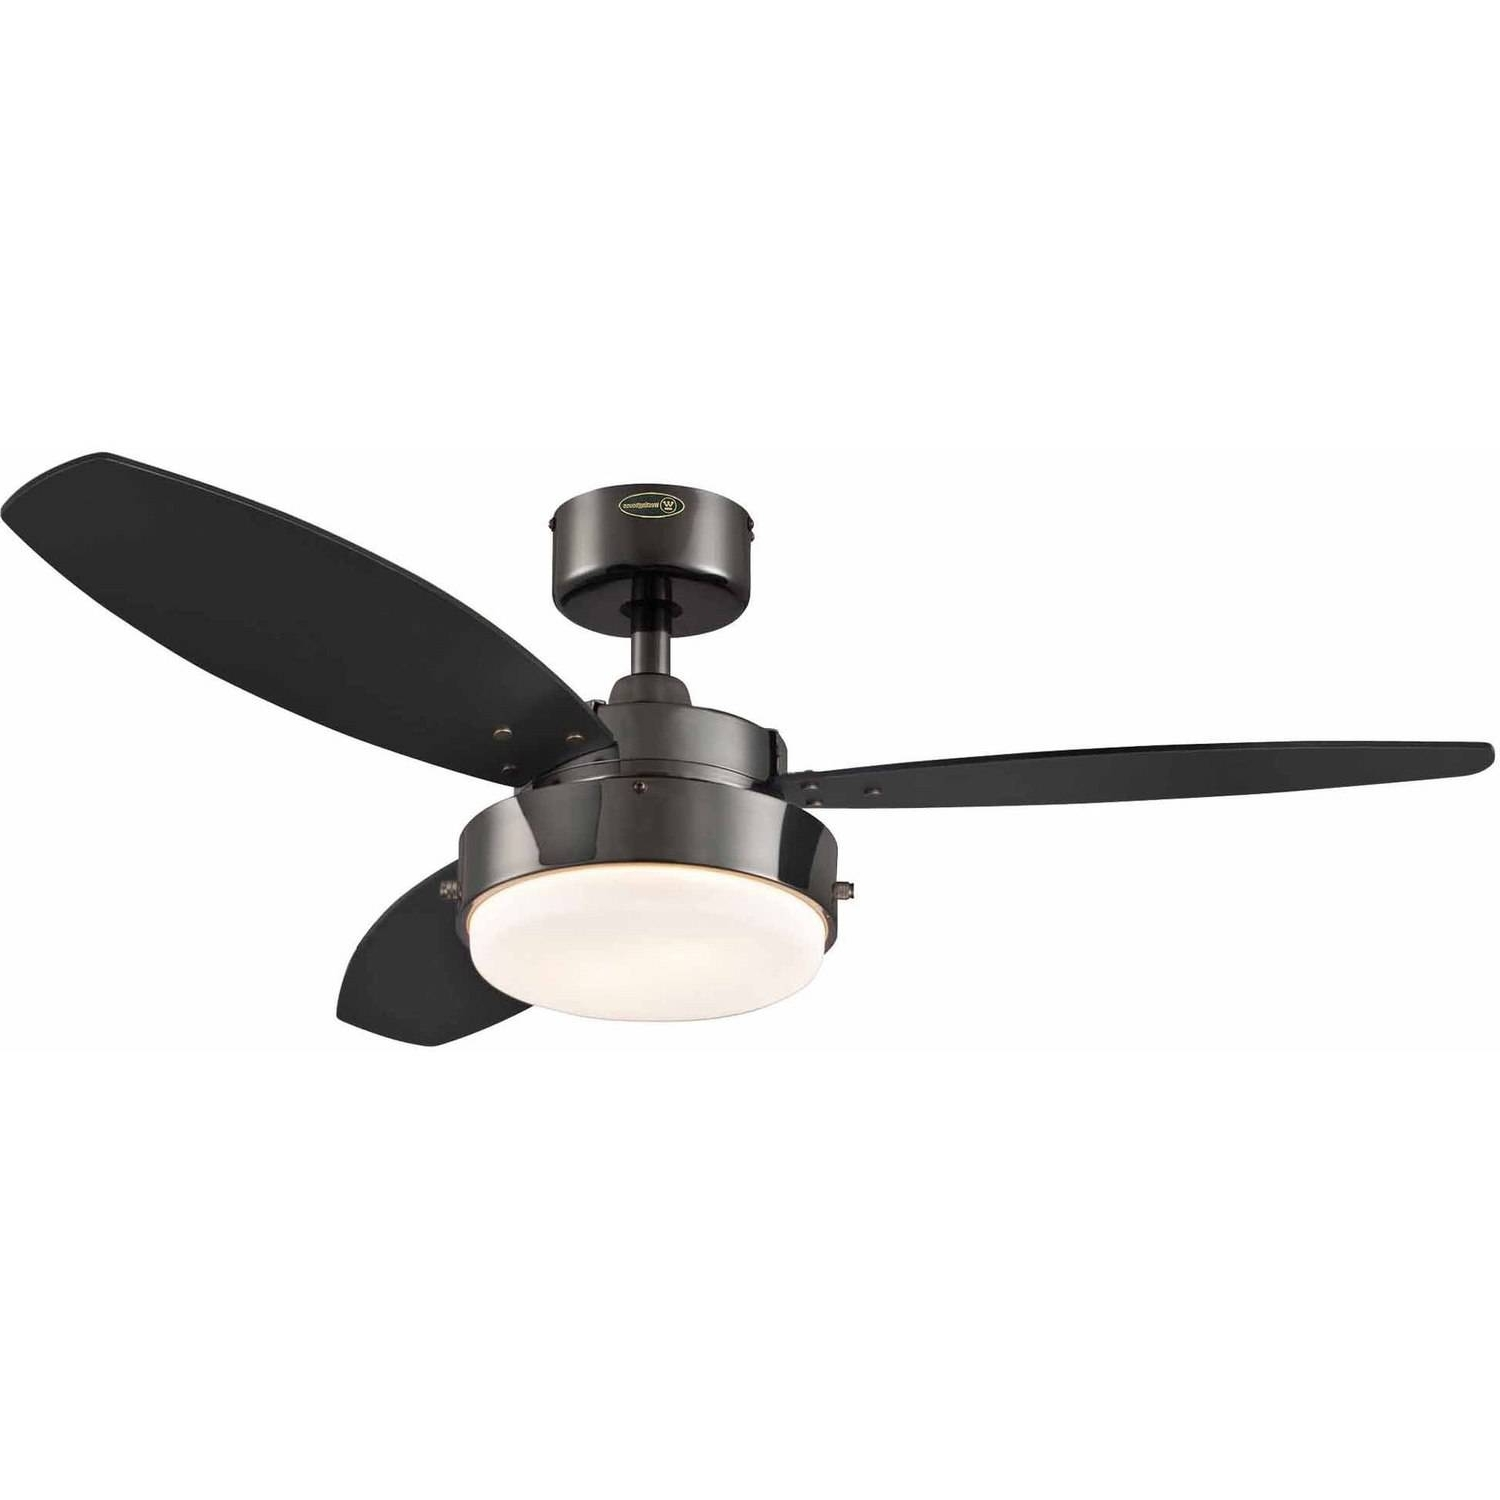 "Recent Metal Outdoor Ceiling Fans With Light Regarding Westinghouse 7876400 42"" Gun Metal 3 Blade Reversible Ceiling Fan (View 15 of 20)"